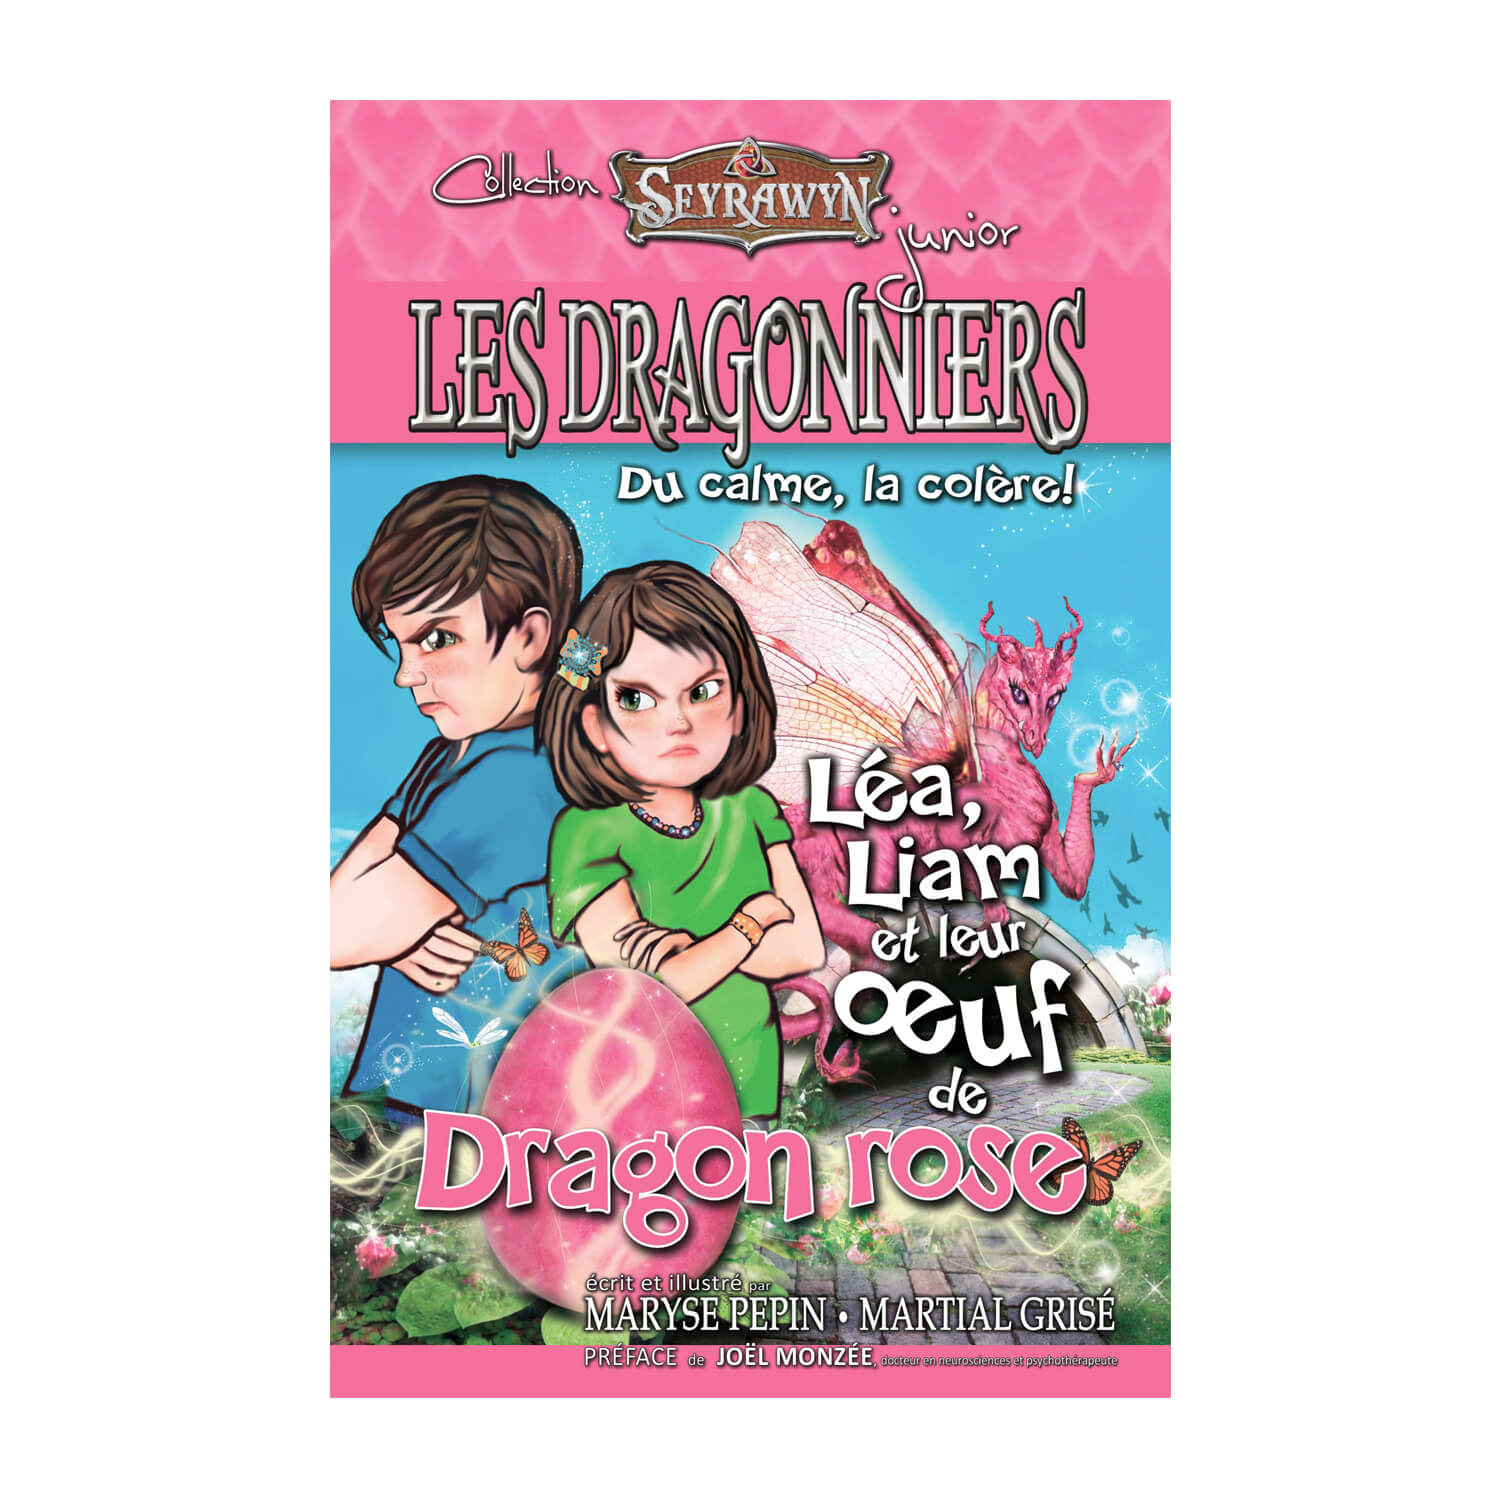 Les dragonniers 2 (oeuf Dragon rose)